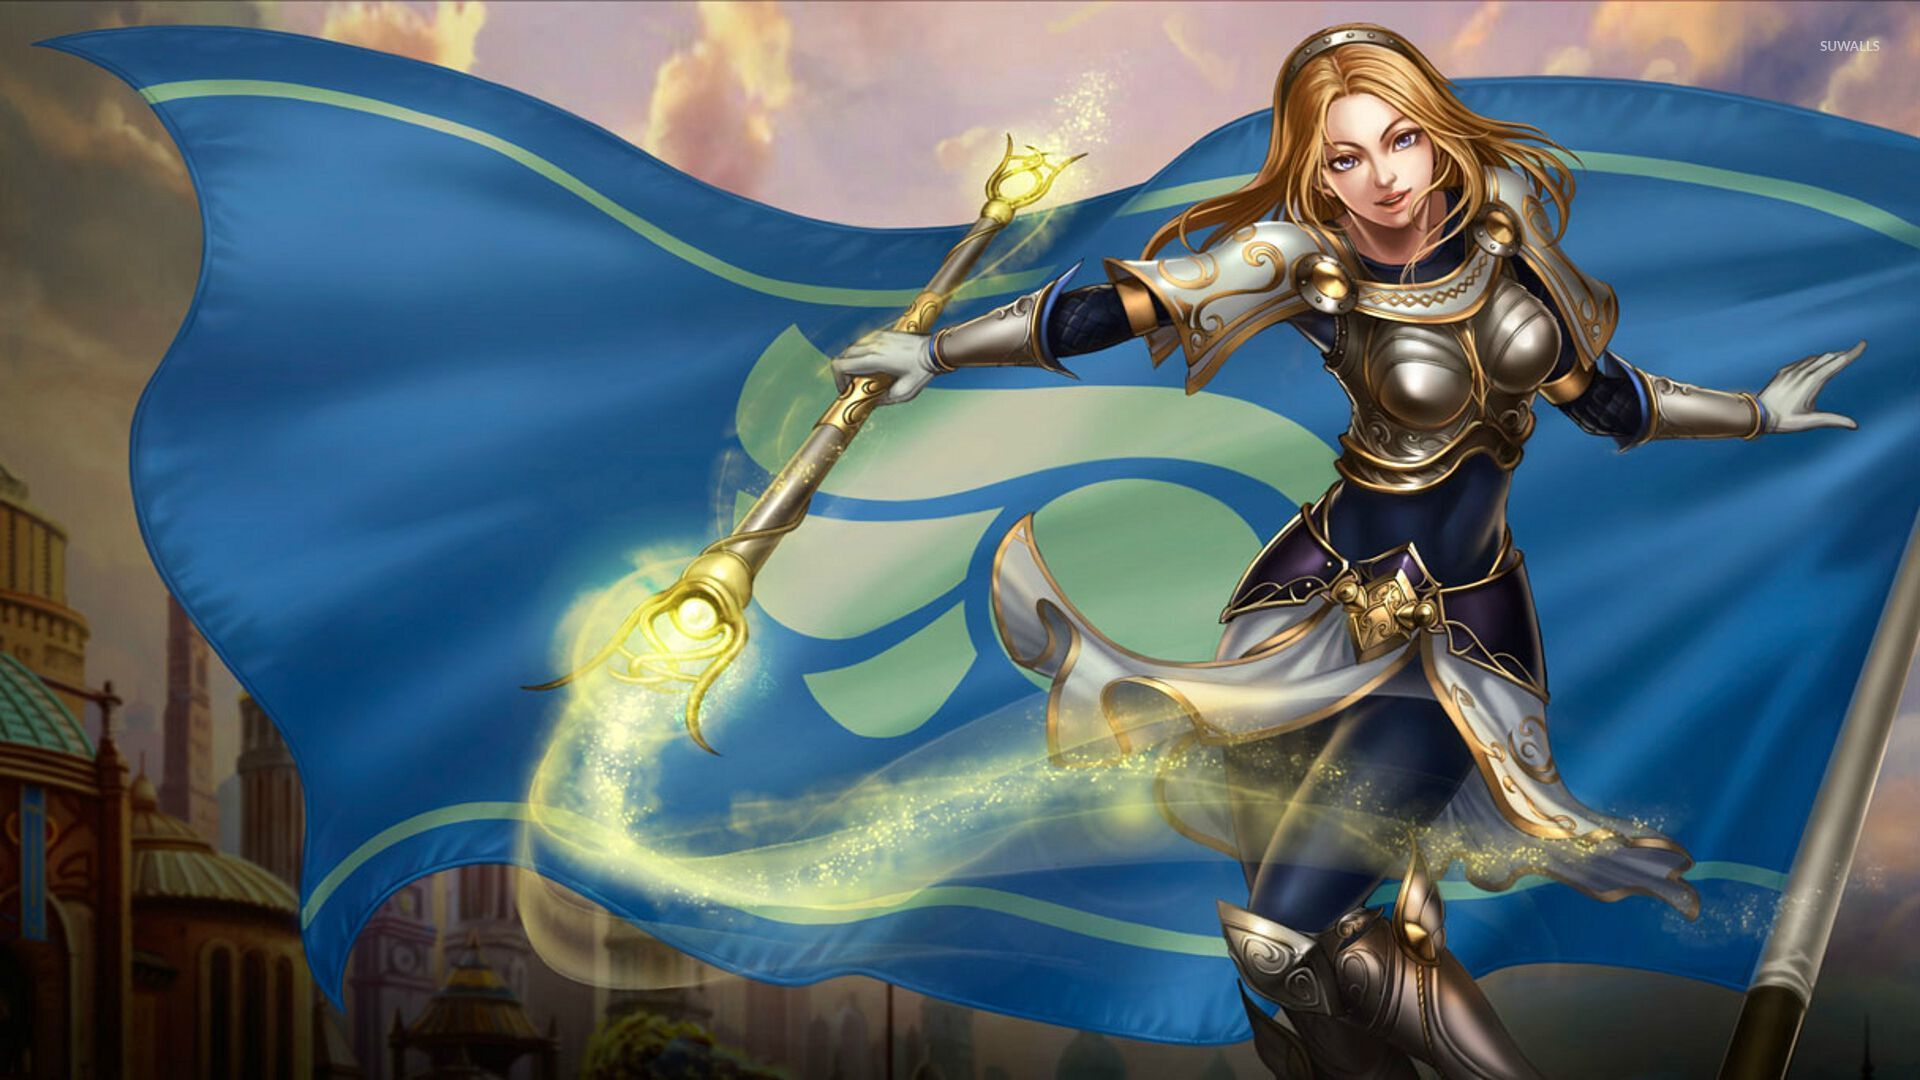 Lux In League Of Legends Wallpaper Game Wallpapers 51859